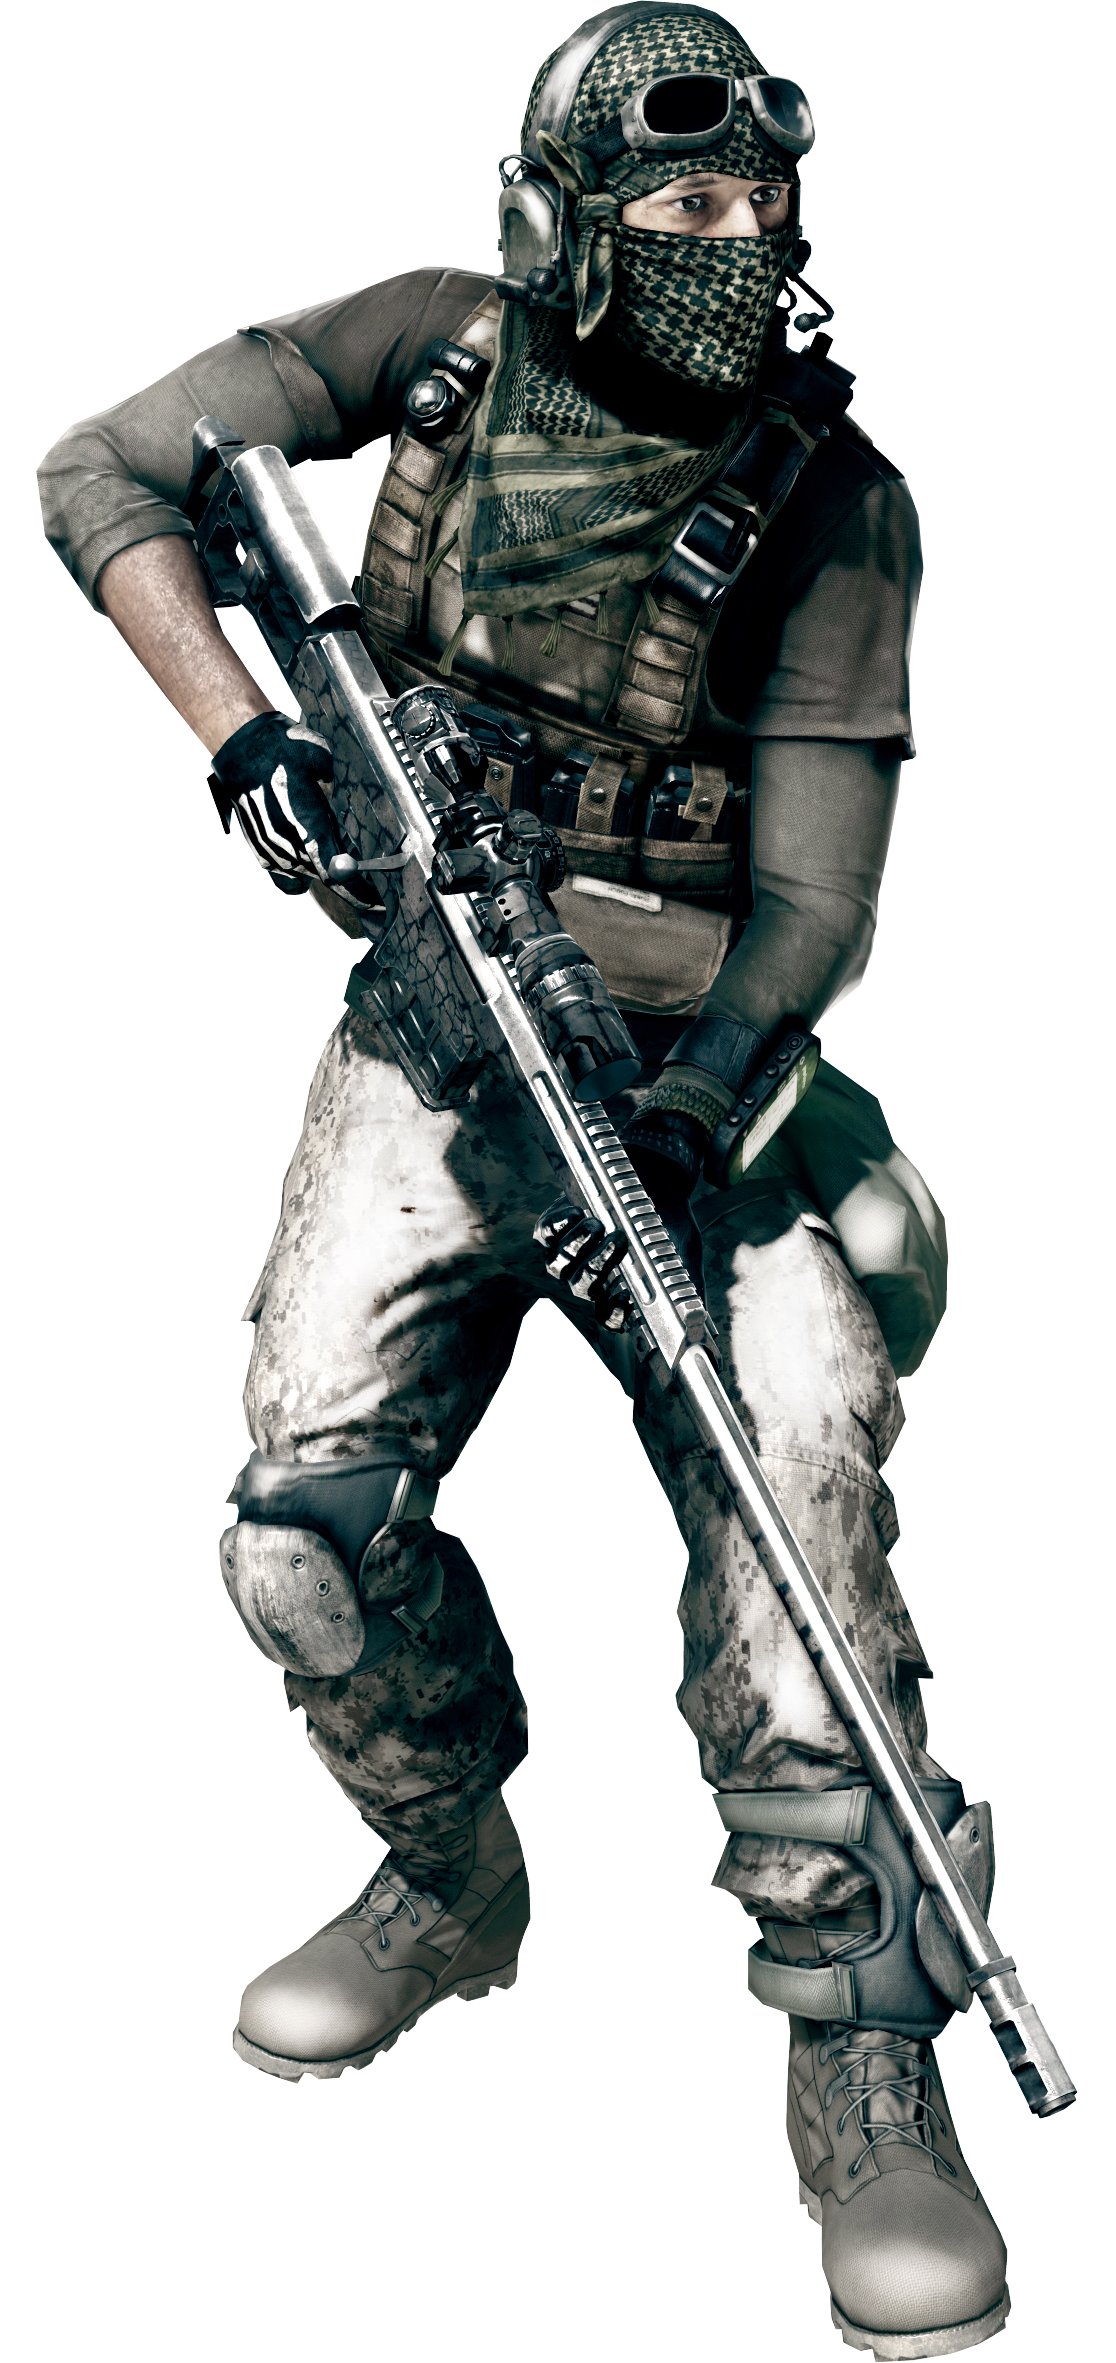 Png images group with. Battlefield transparent 4 clip black and white library